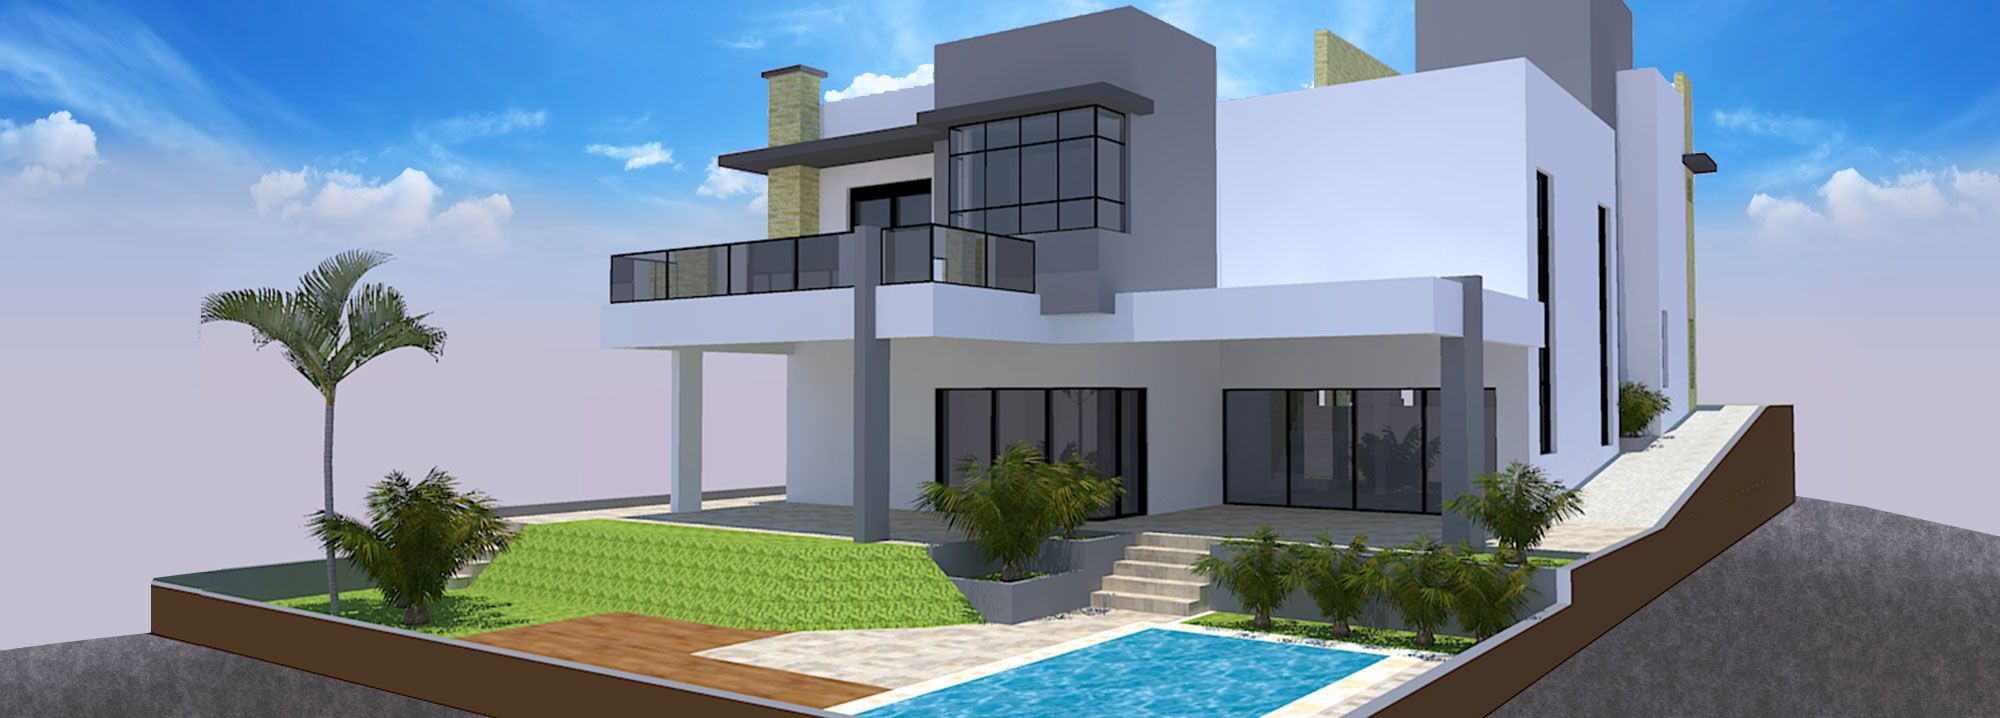 Projeto Residencial - 329,56 m²